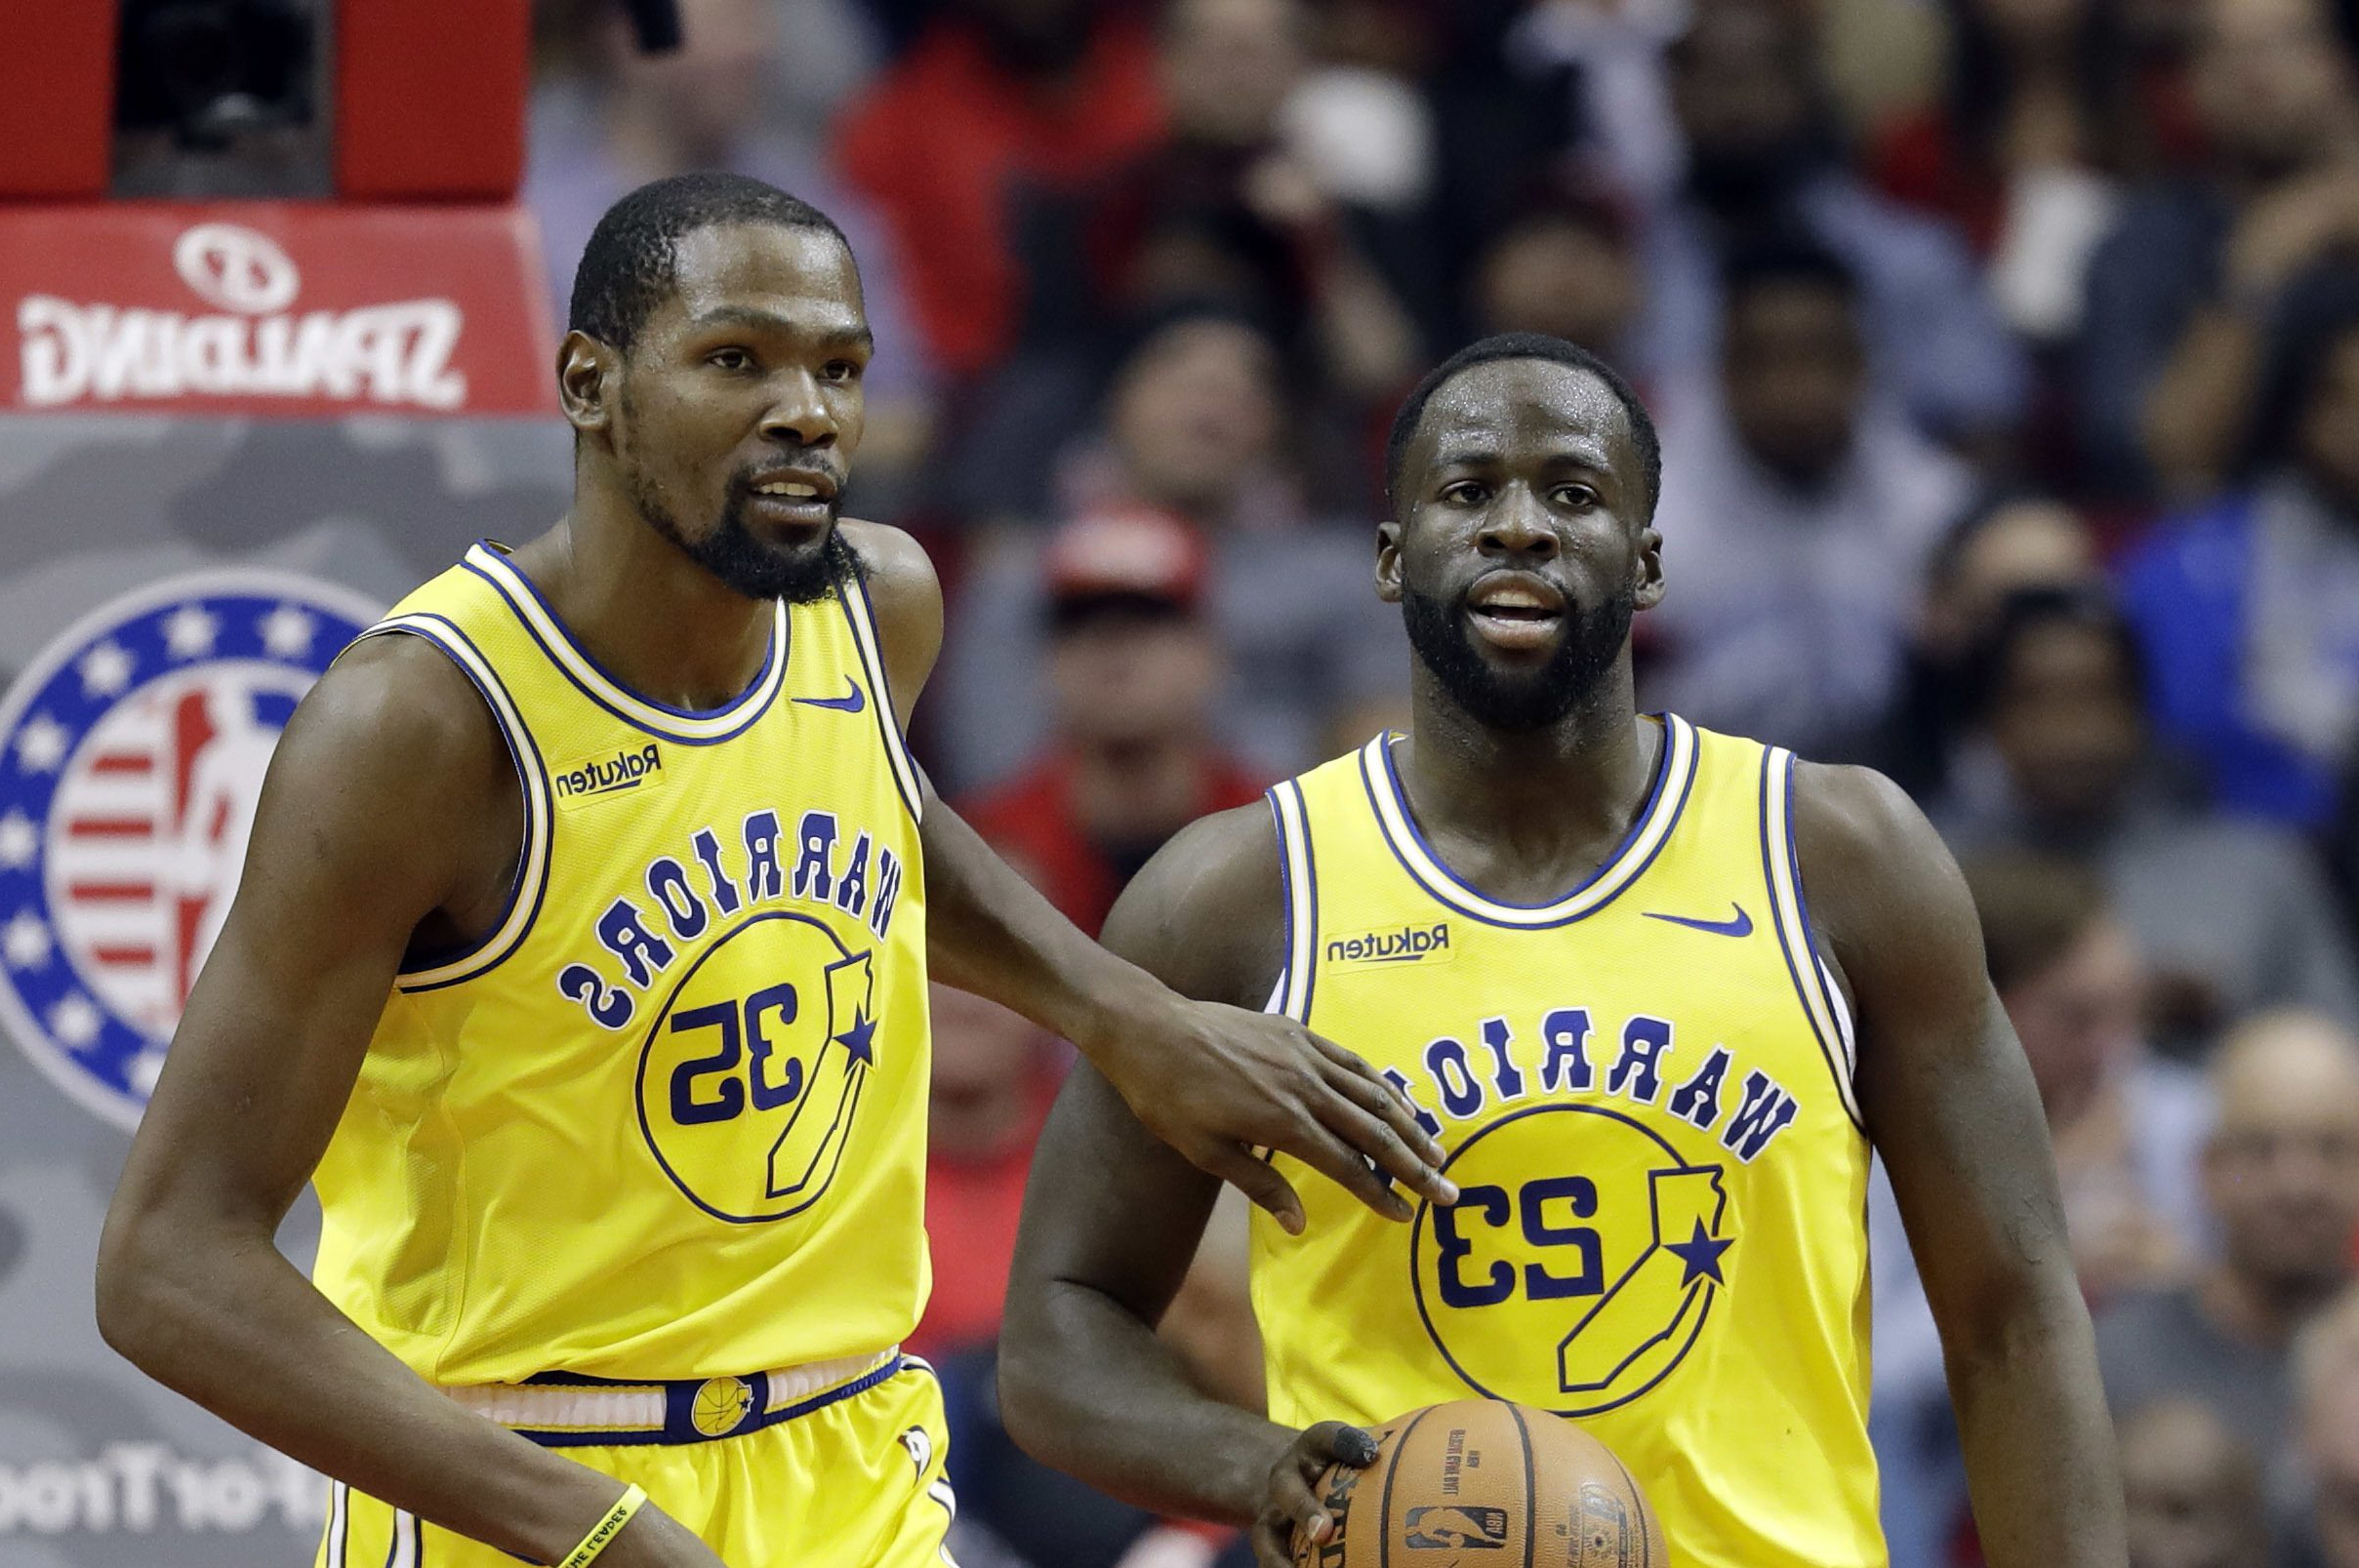 fcfd415d19f Report  Here s the Draymond Green insult of Kevin Durant that got him  suspended